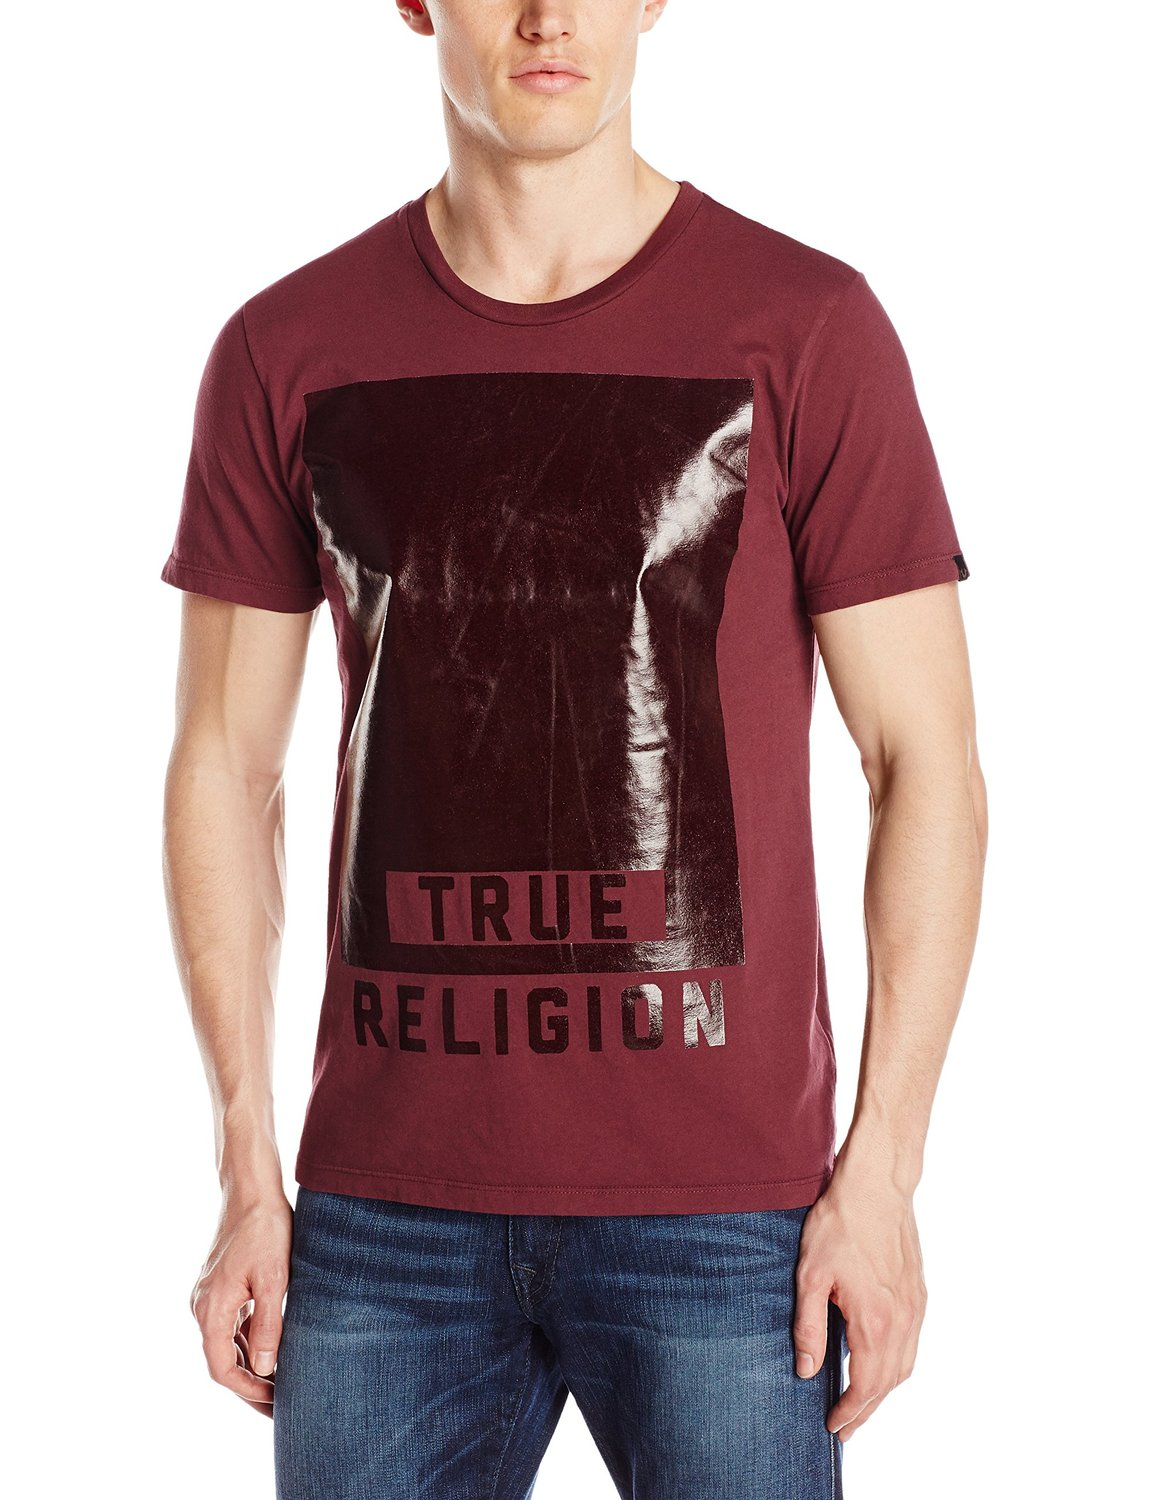 True Religion Mens T-Shirt